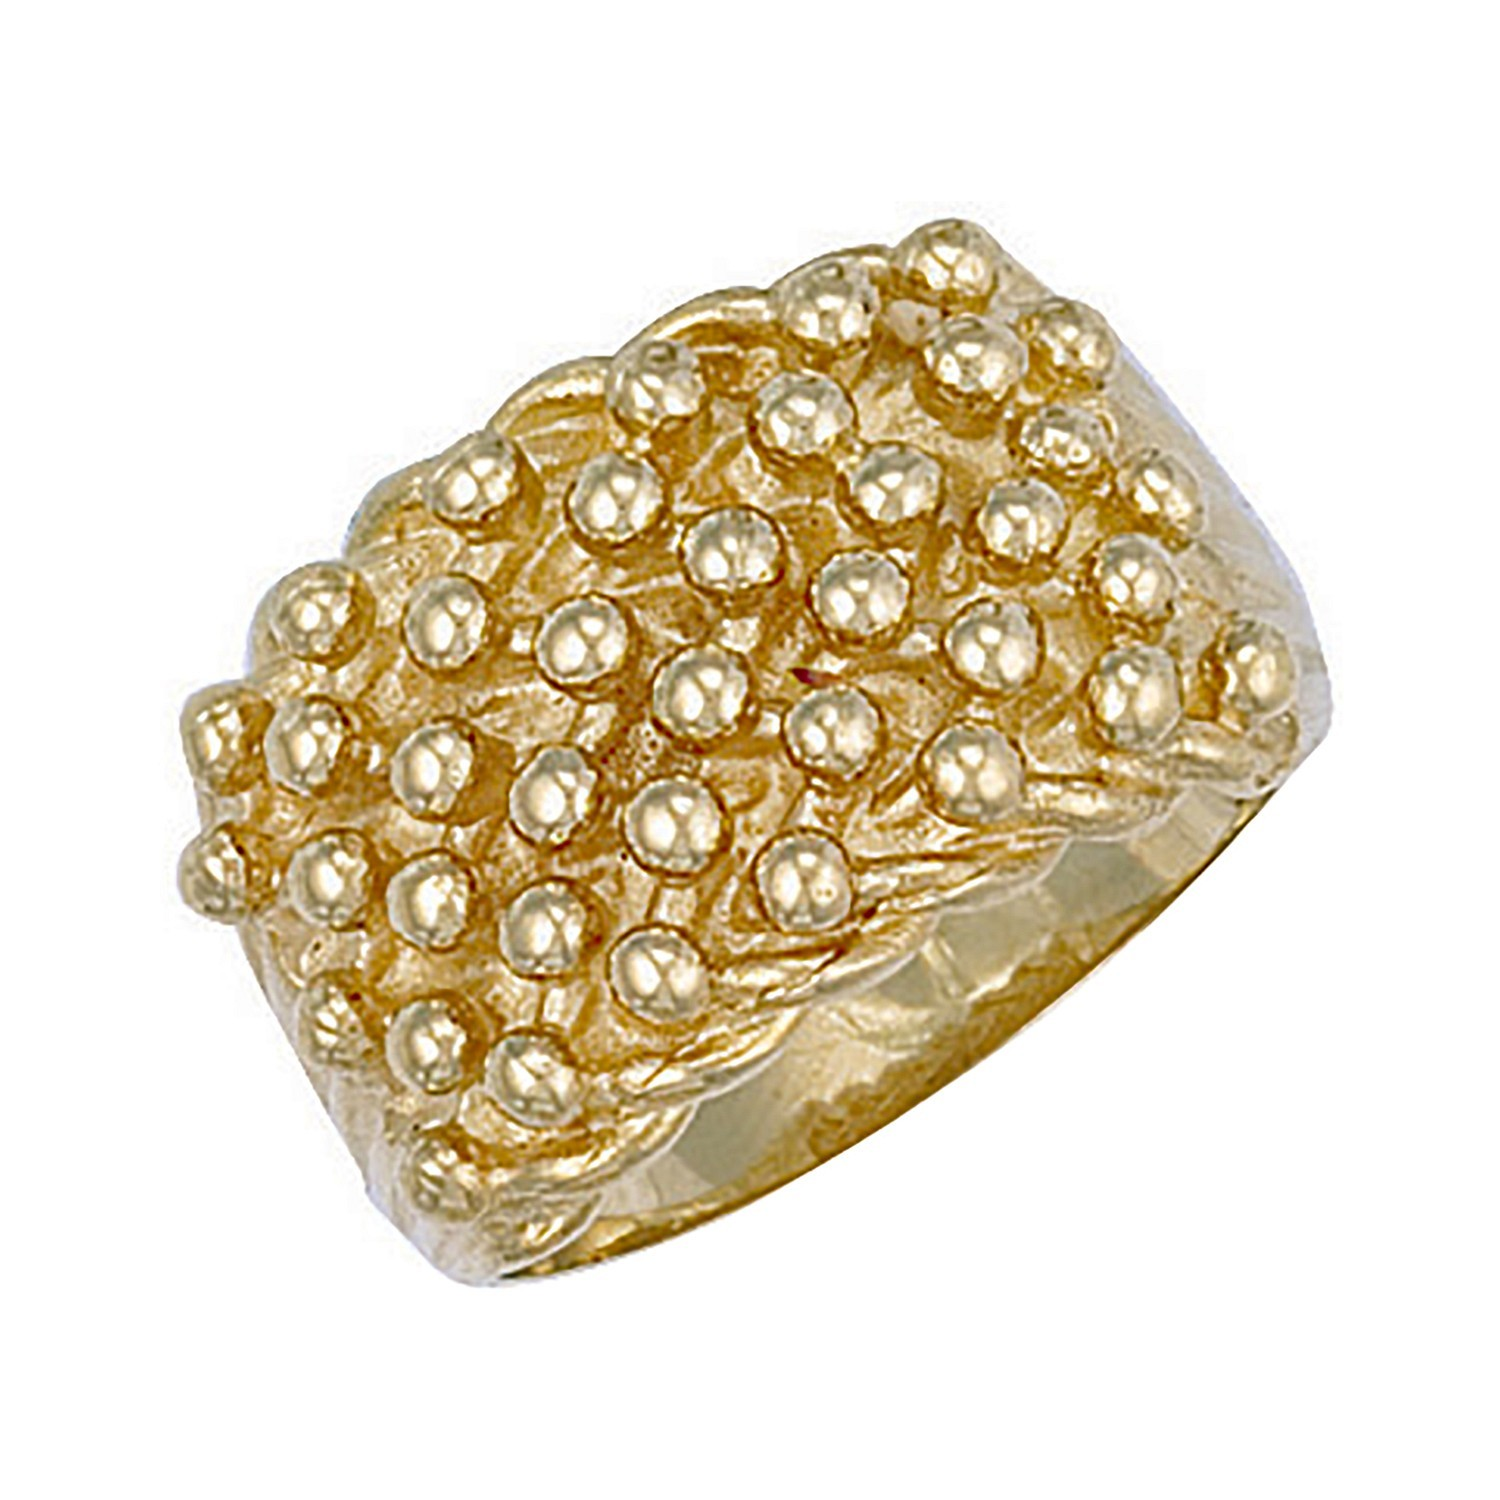 Y/G Woven Back 6 Row Keeper Ring